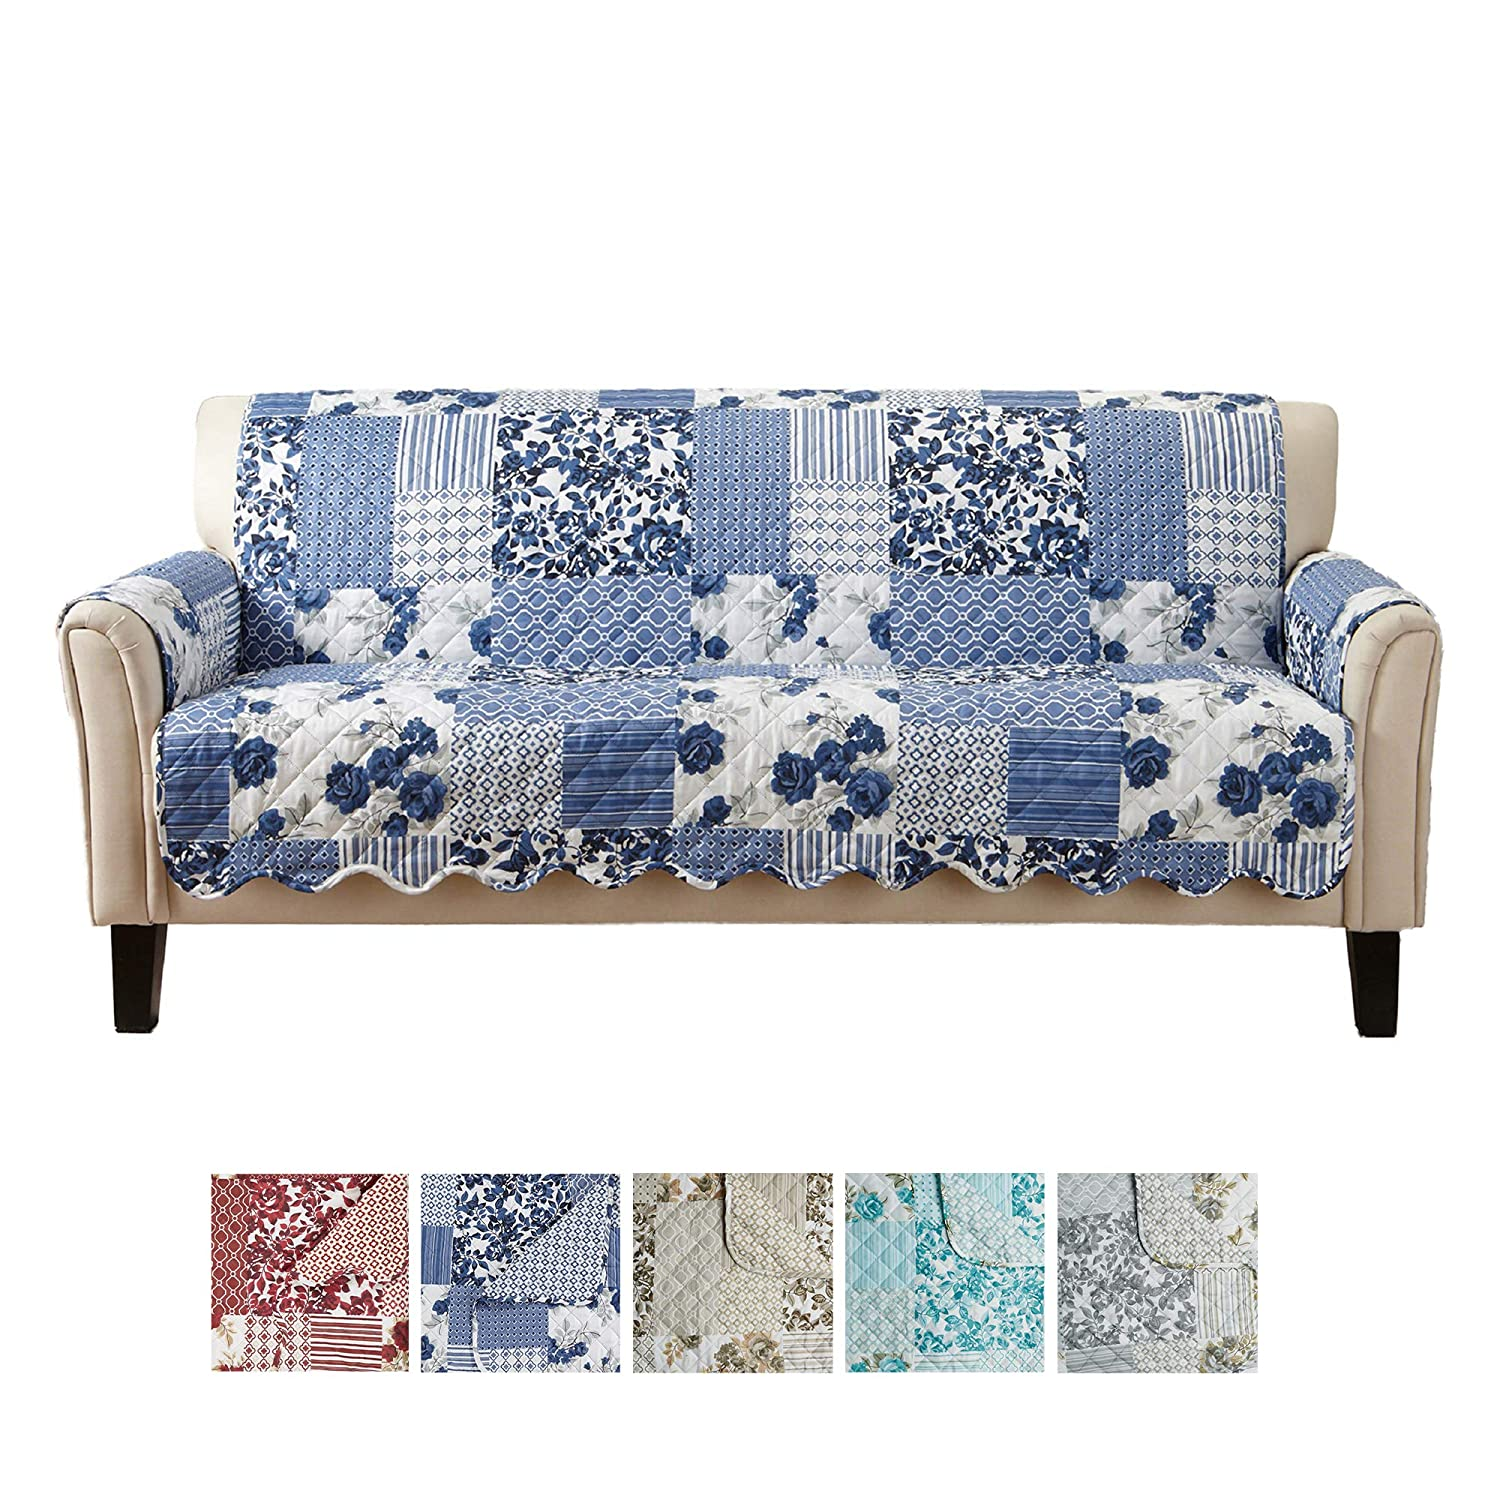 Marvelous Great Bay Home Patchwork Scalloped Printed Furniture Protector Stain Resistant Couch Cover 74 Sofa Navy Caraccident5 Cool Chair Designs And Ideas Caraccident5Info